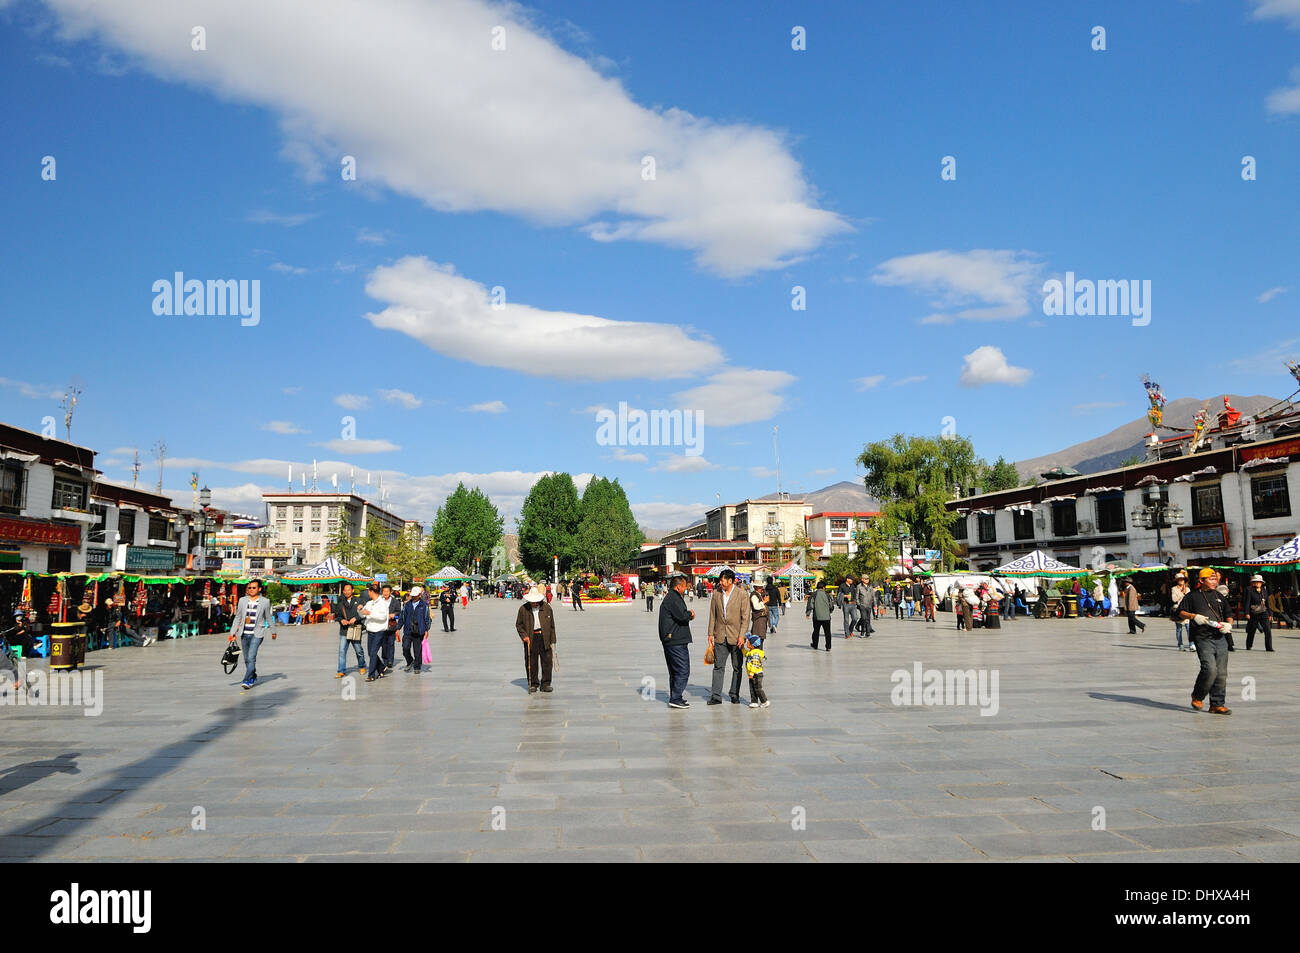 Barkor - Marketplace Lhasa Tibet China - Stock Image